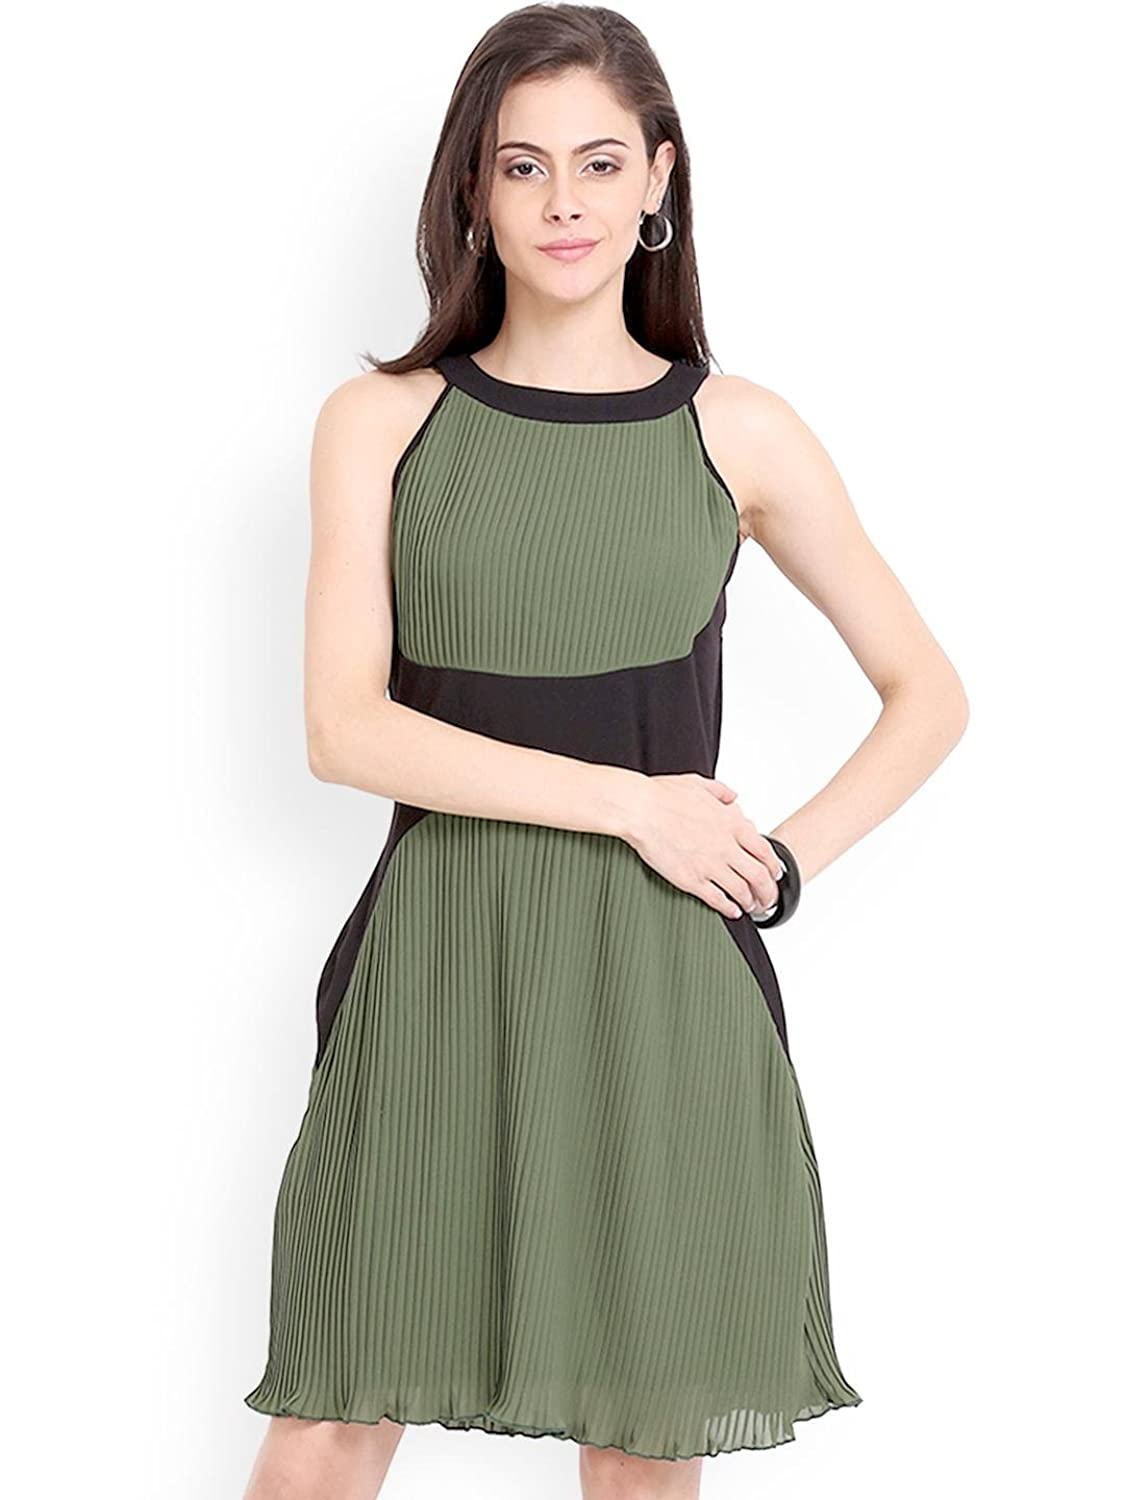 Women's Green Polyester Solid Sleeveless Casual Skater Dress